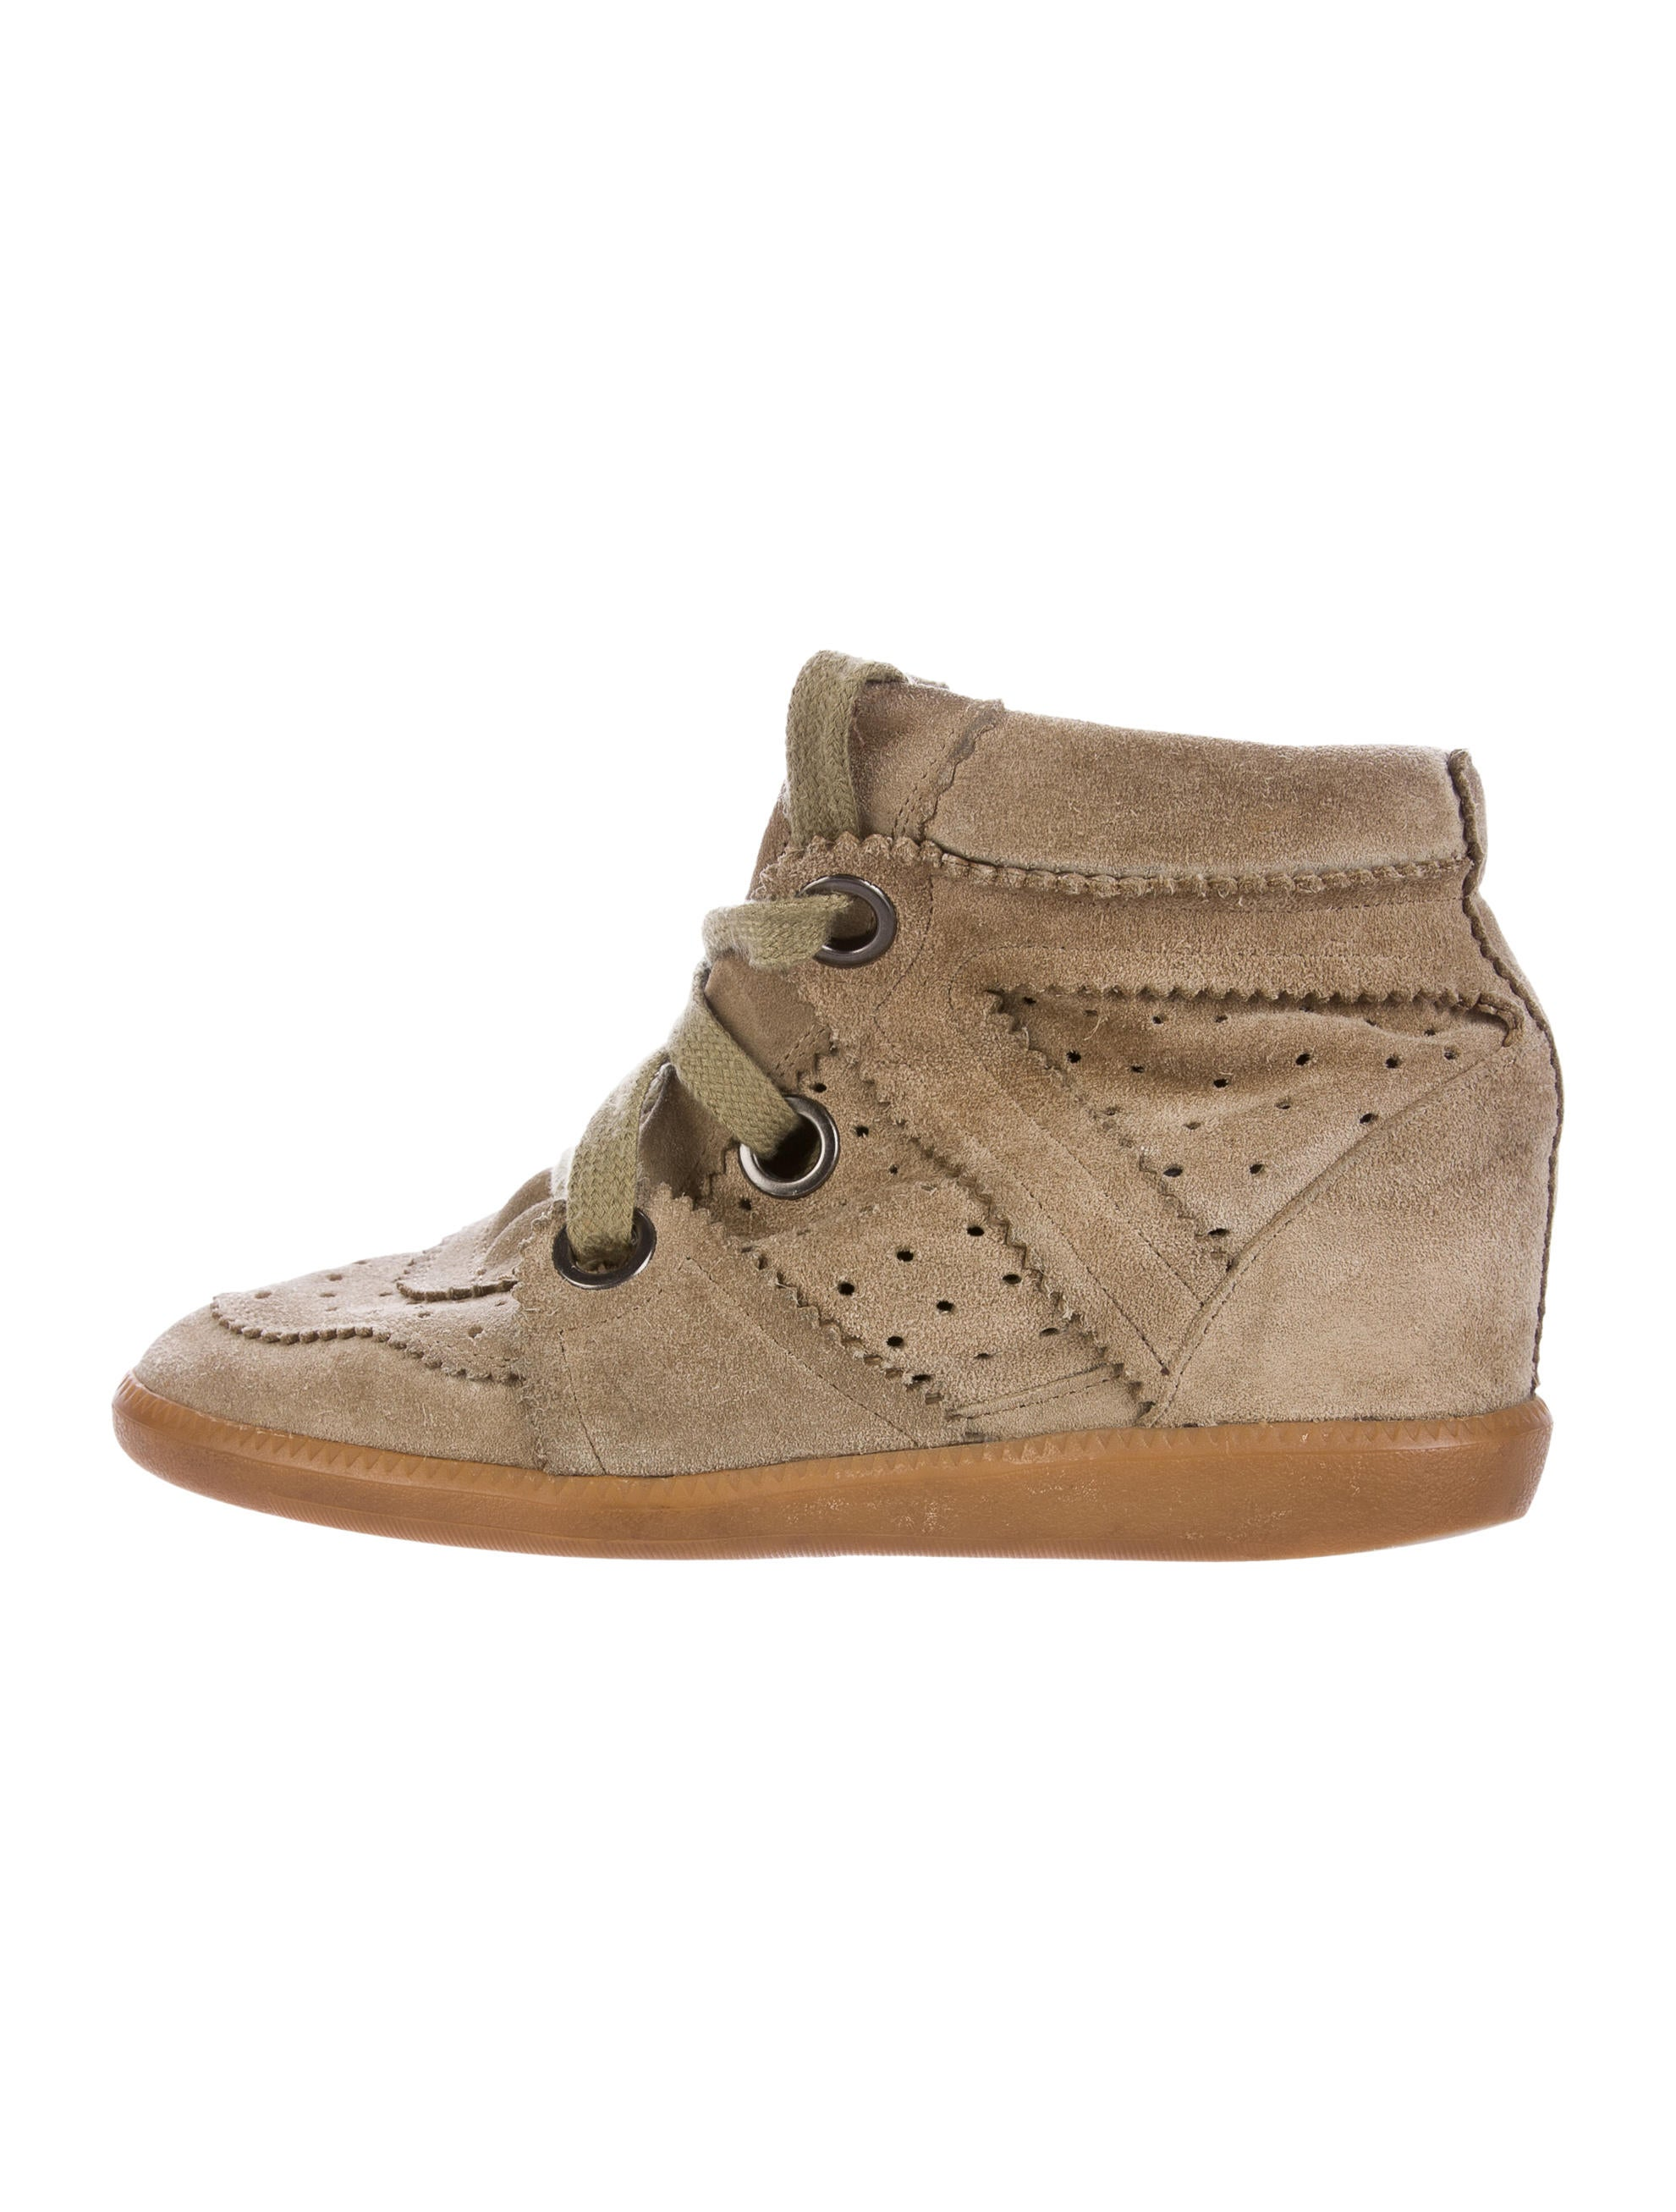 isabel marant bobby wedge sneakers shoes isa42356 the realreal. Black Bedroom Furniture Sets. Home Design Ideas